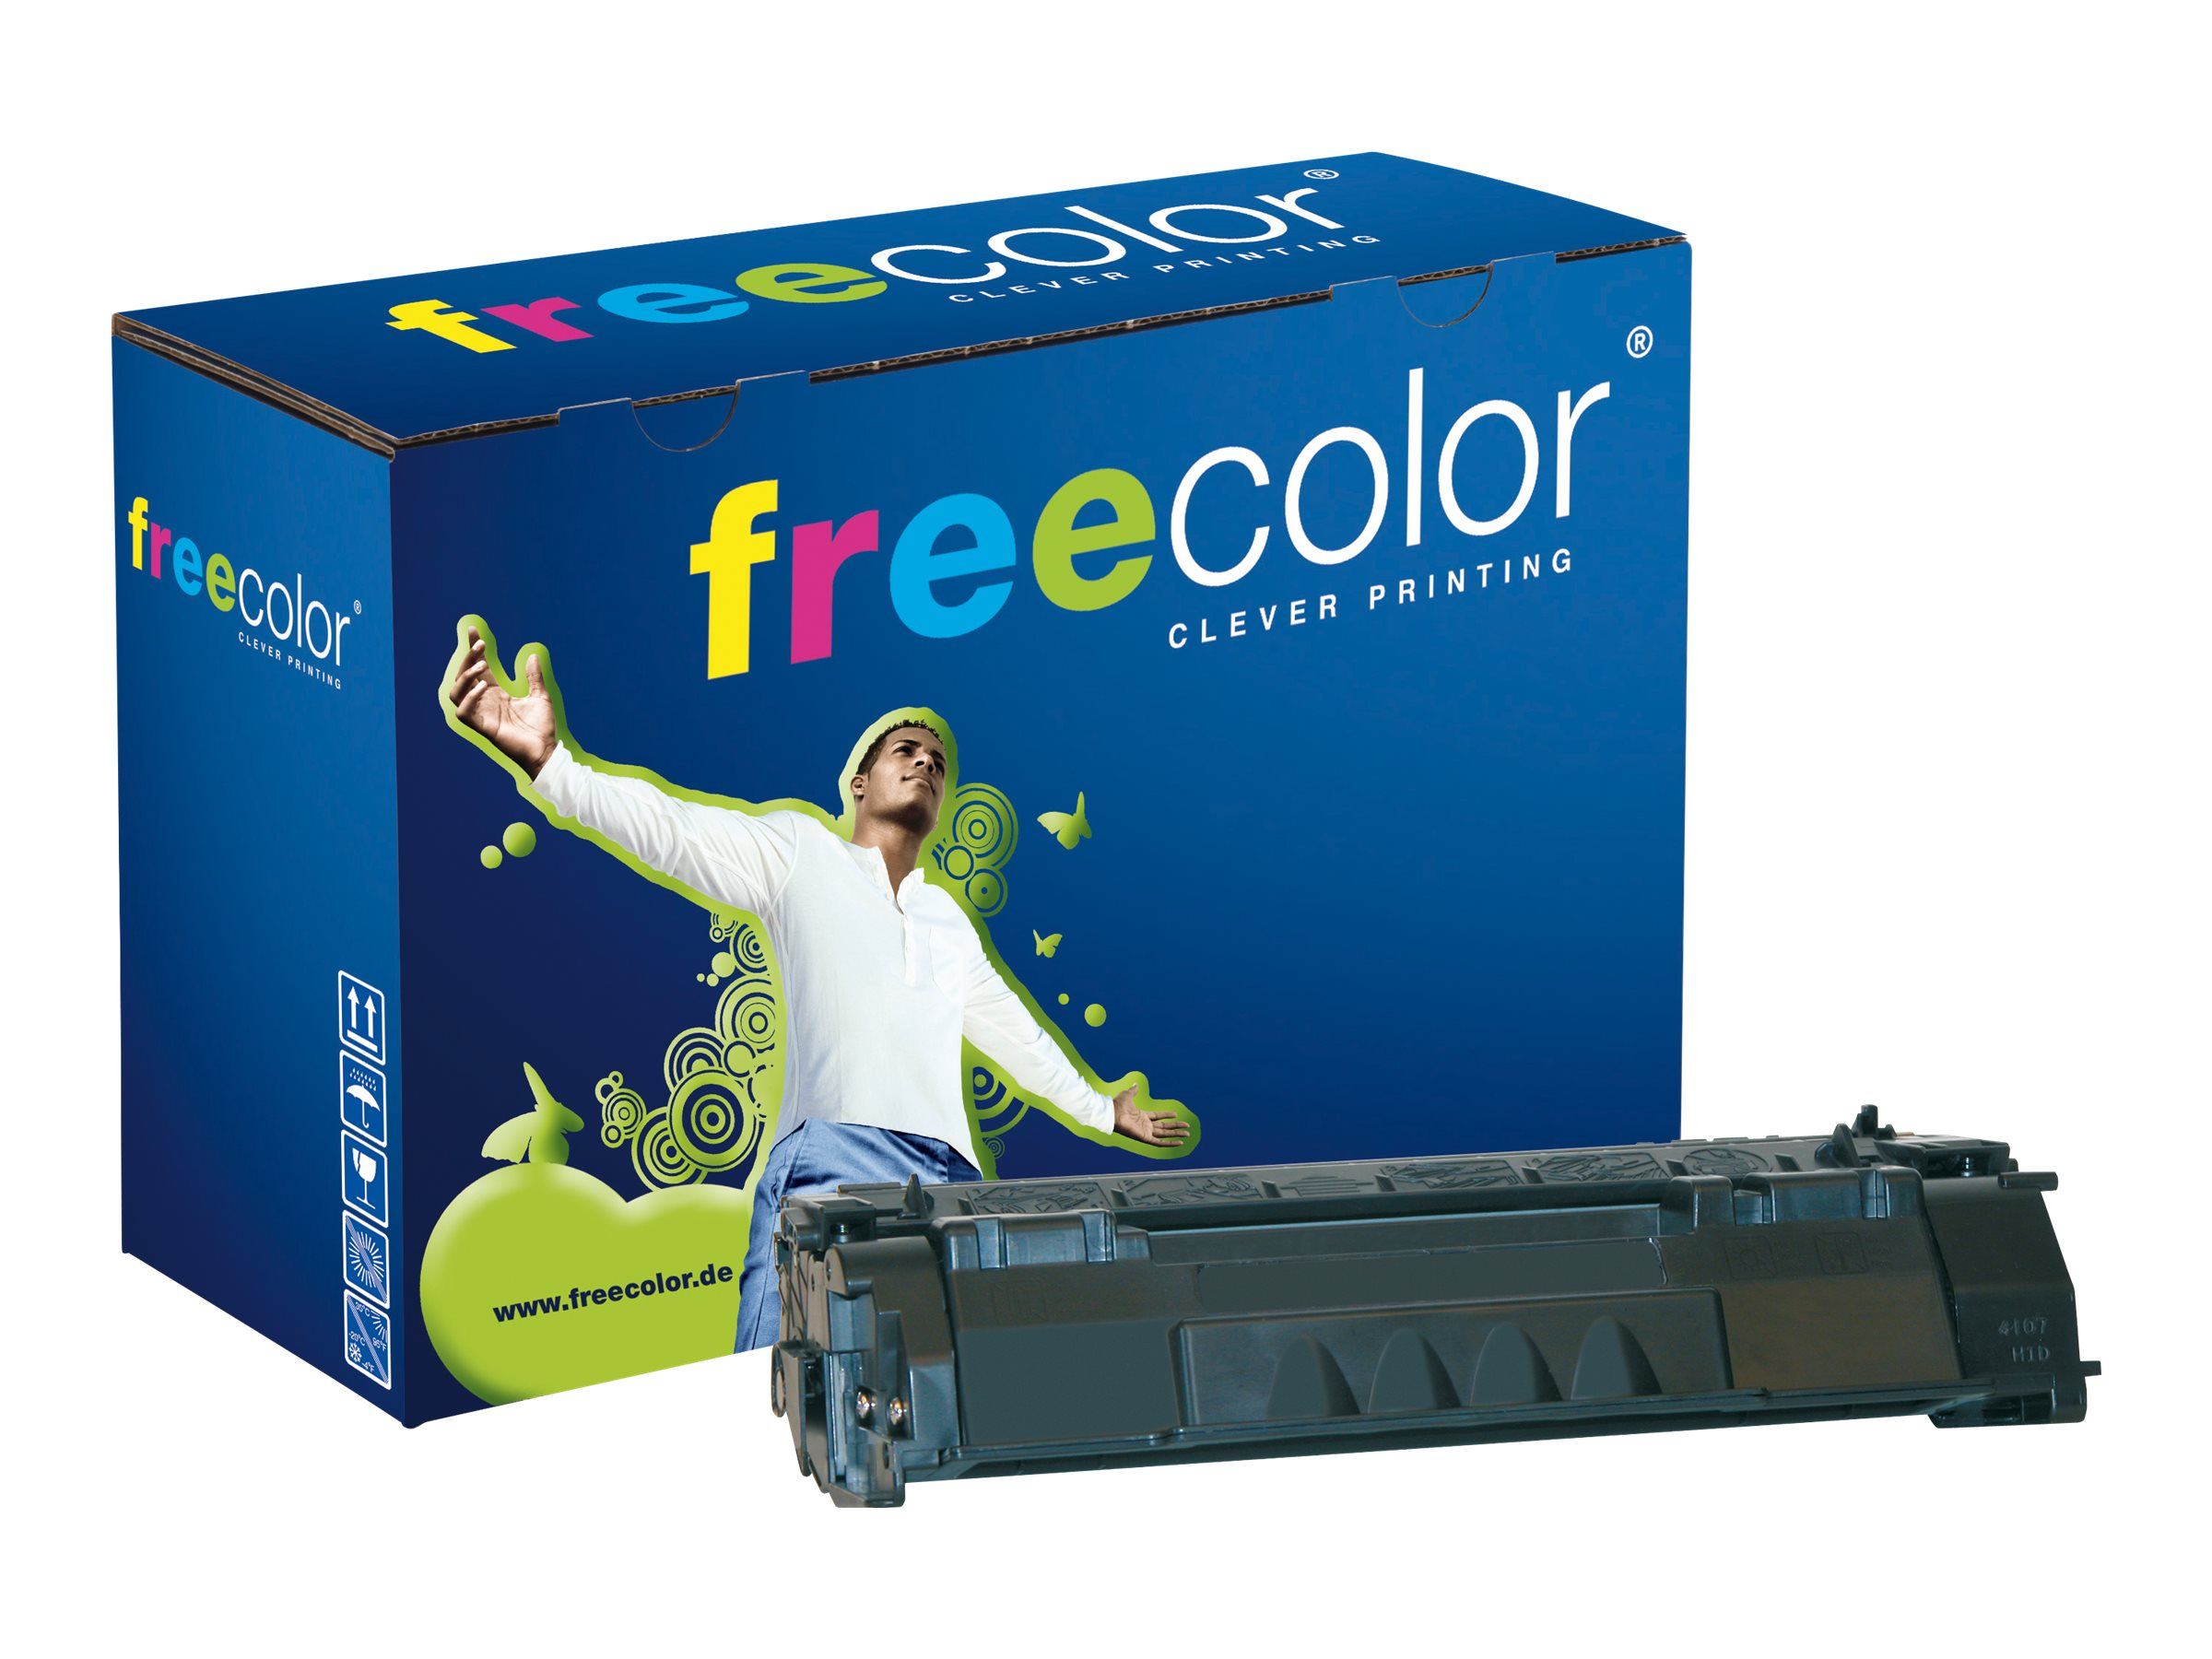 FREECOLOR - 140 g - Schwarz - Tonerpatrone (Alternative zu: HP 49A) - für HP LaserJet 1160, 1160Le, 1320, 1320n, 1320nw, 1320t, 1320tn, 3390, 3392